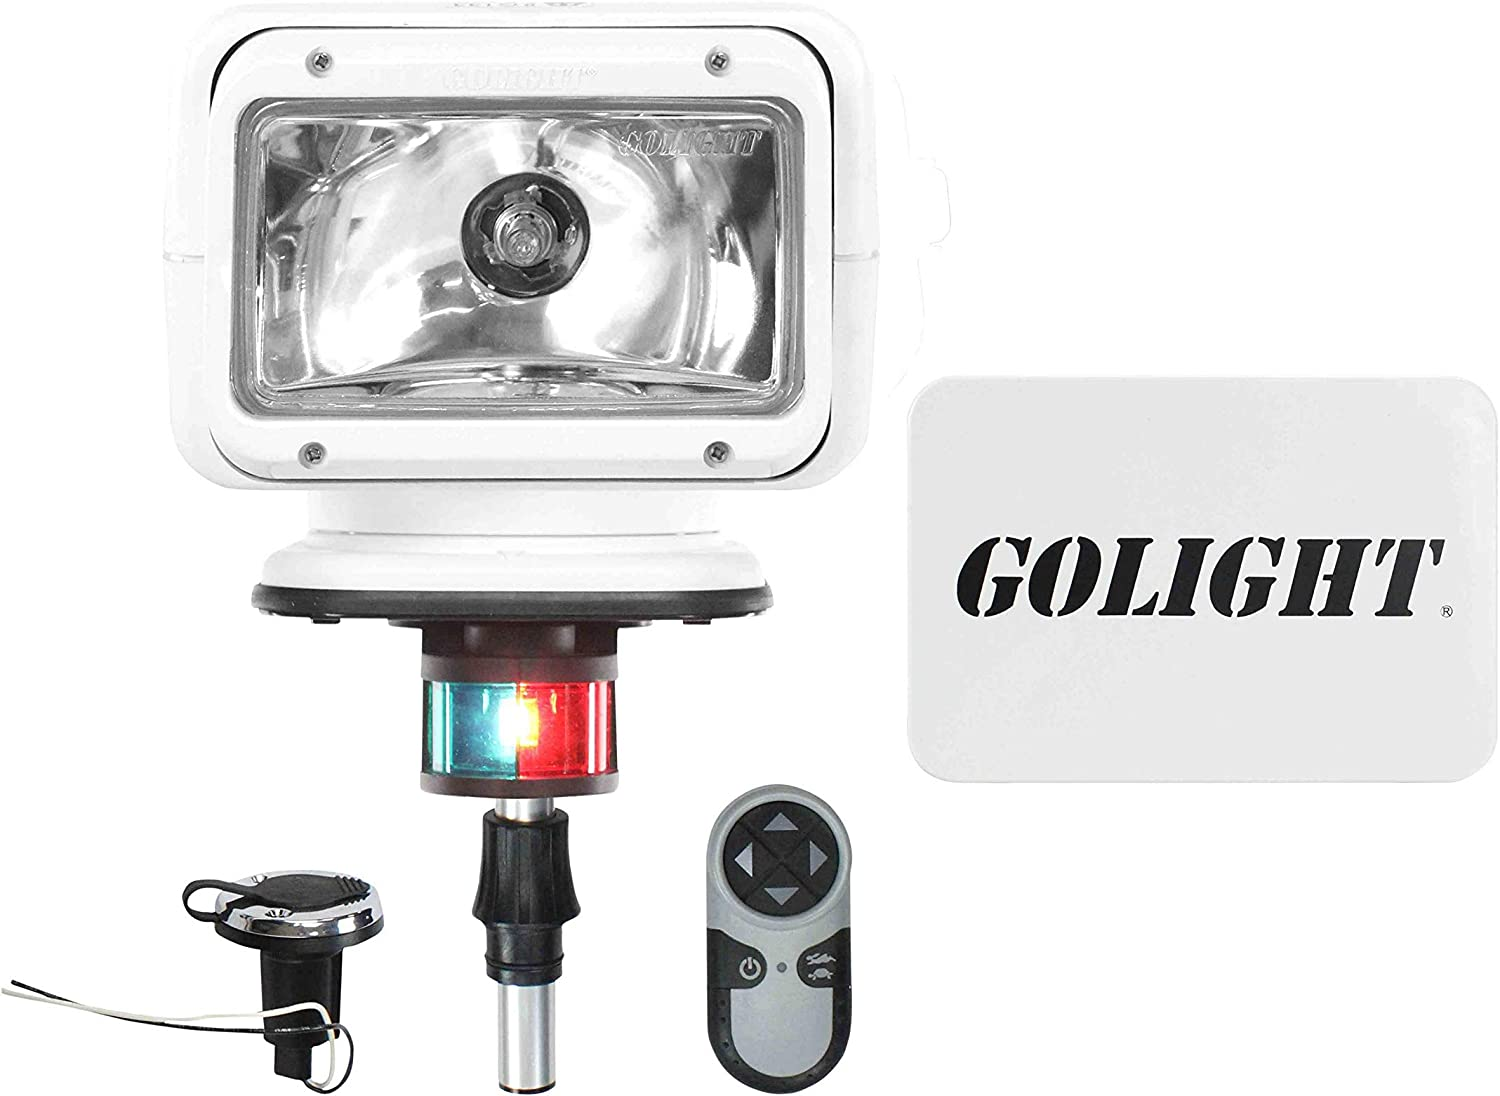 6 inch Driver side WITH install kit Larson Electronics 1015P9IQFKG 1990 International 7000 SERIES Post mount spotlight 100W Halogen -Chrome